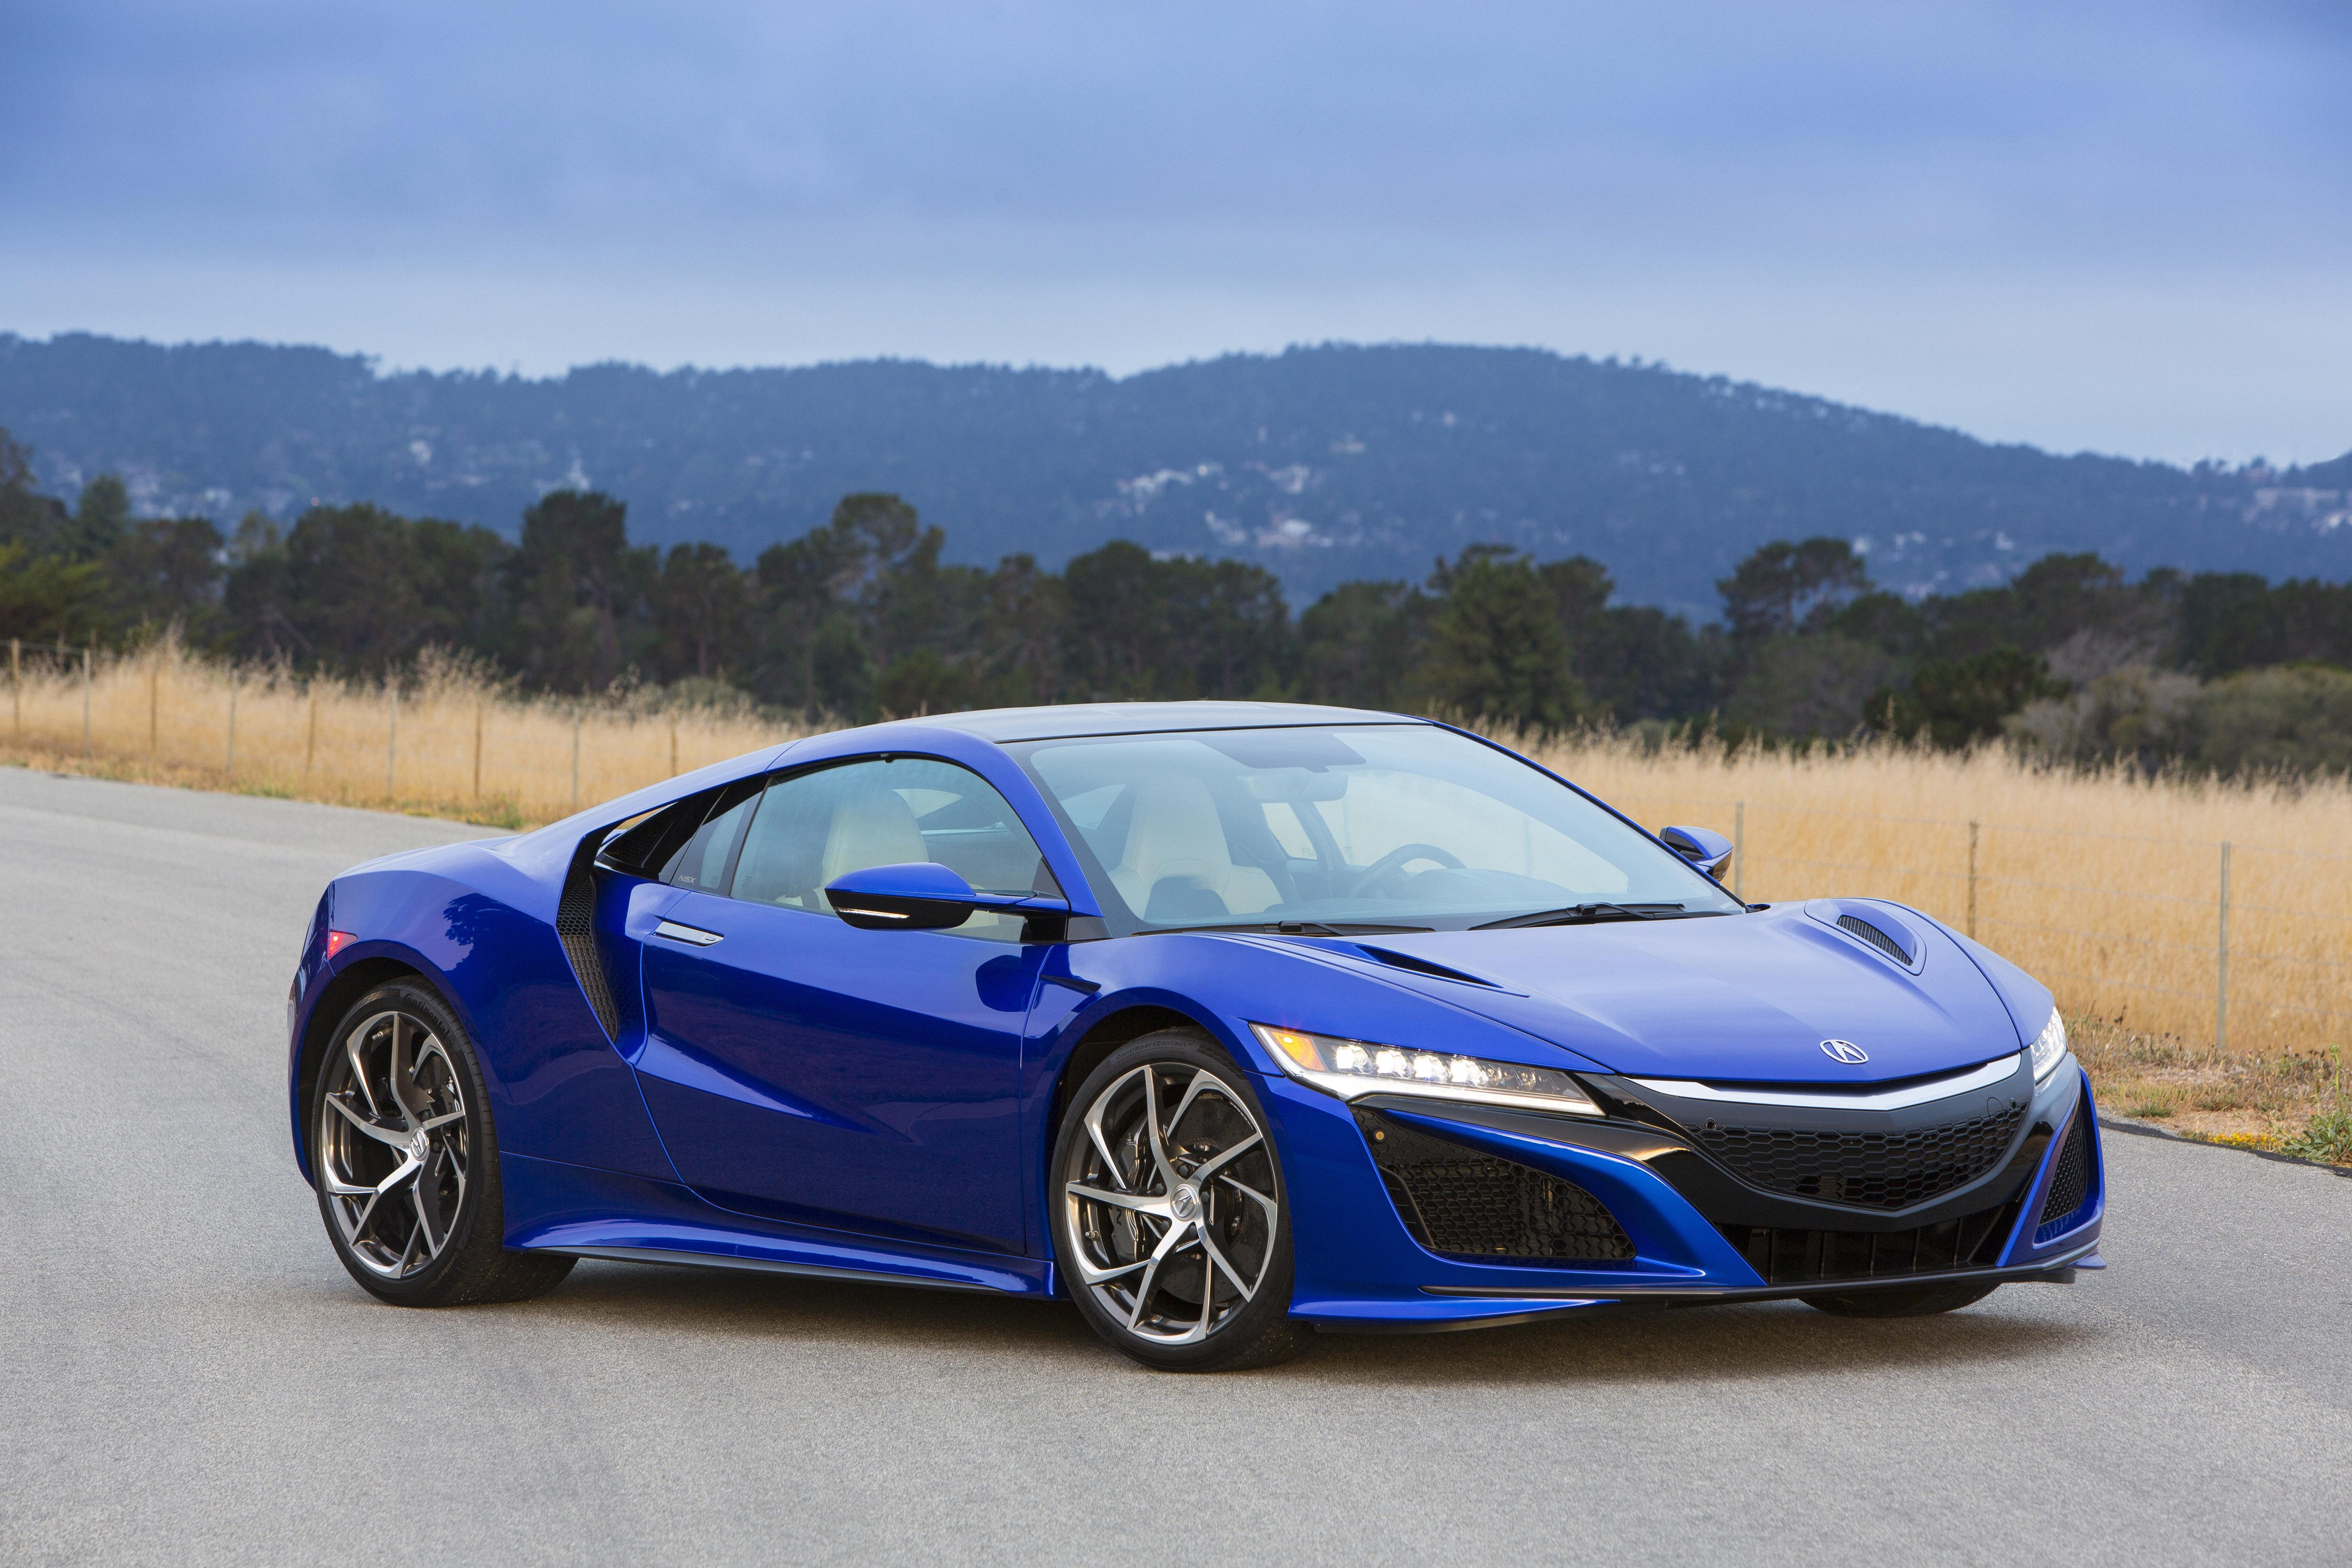 2017 Acura NSX coming with 573 HP, 0-60 MPH time of 3.0 seconds | KMEG